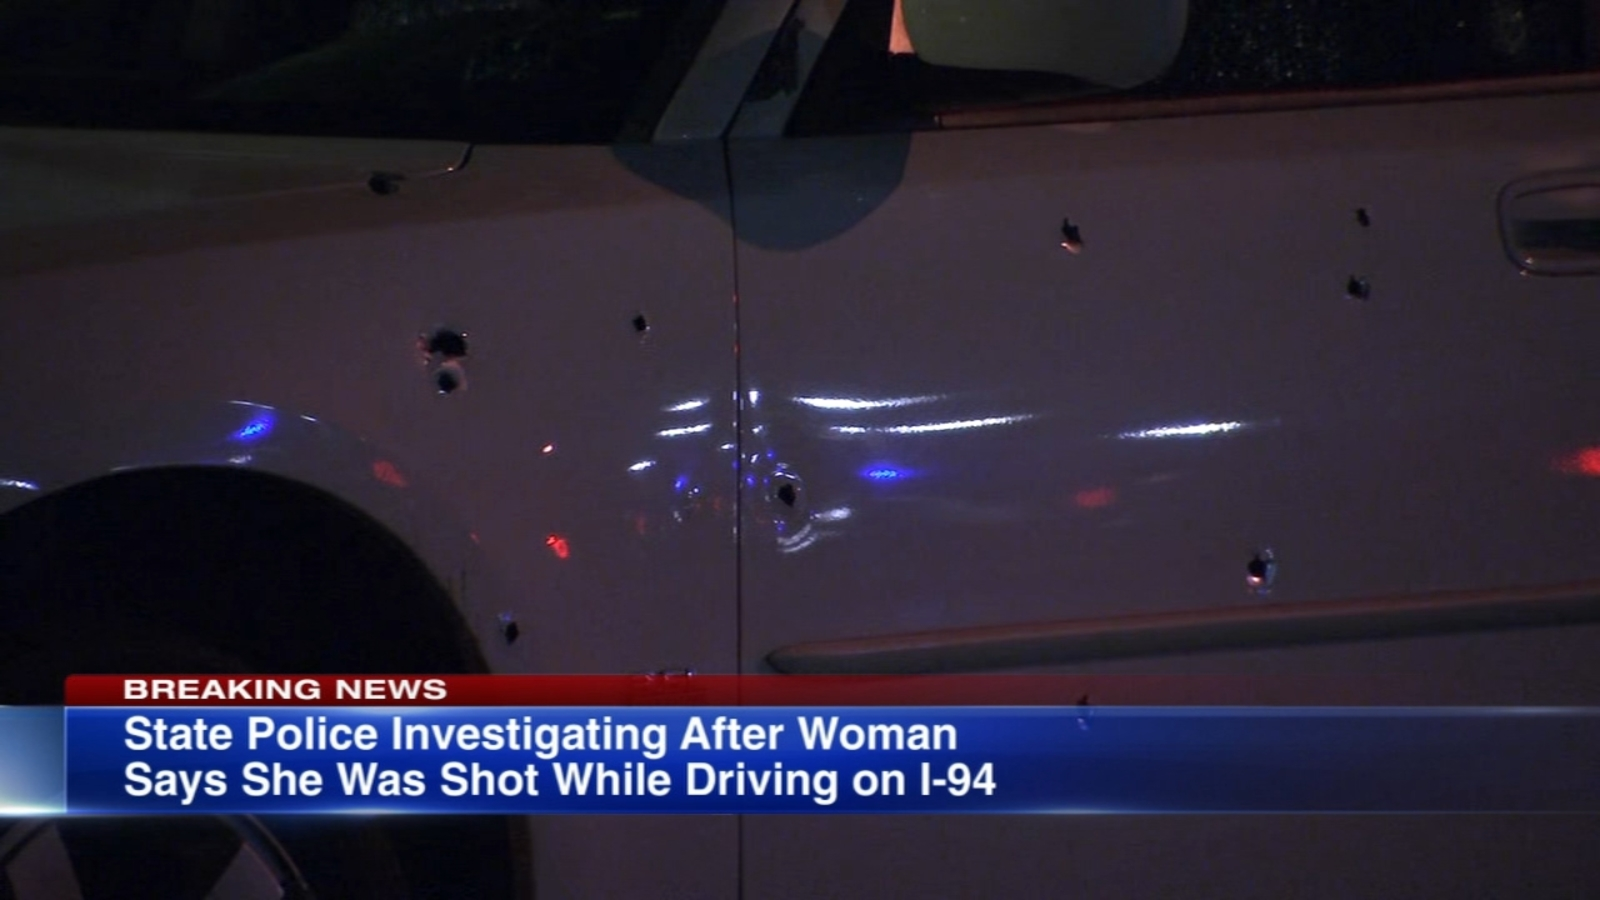 1 injured in reported I-94 expressway shooting, SB lanes shut down from 130th to Dolton Ave for investigation